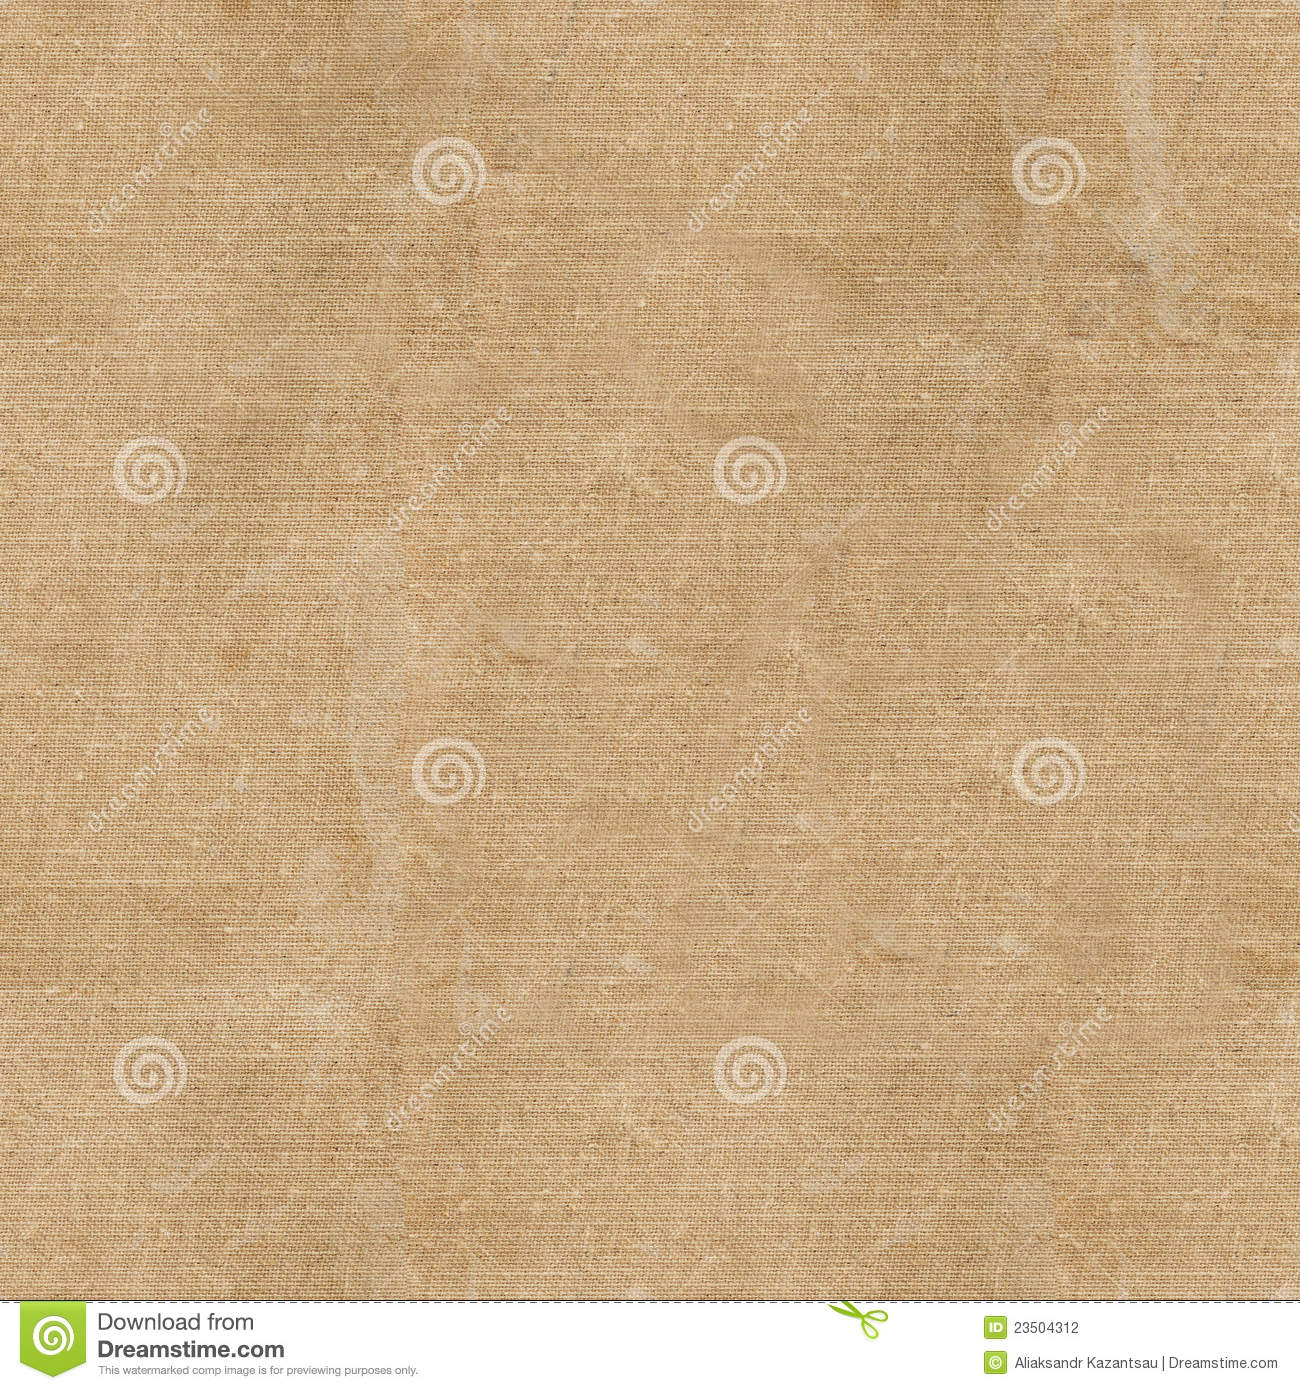 Book Cover Material Xl : Old book in a cloth cover seamless fabric texture stock